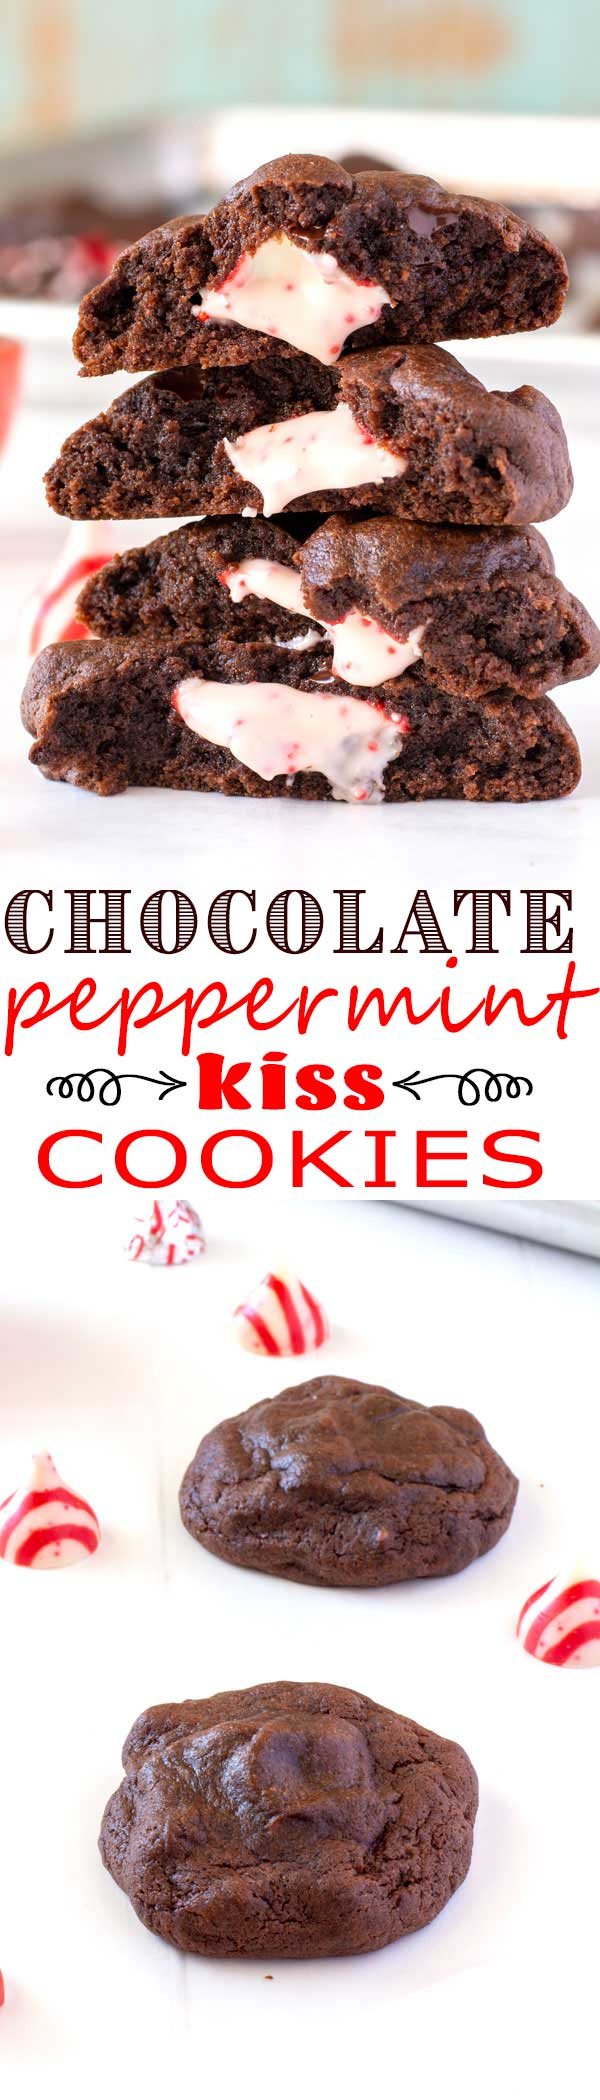 Candy Cane Kiss Cookies recipe - white chocolate peppermint kisses stuffed inside the most fudgy chocolate cookies! #christmas #christmascookies